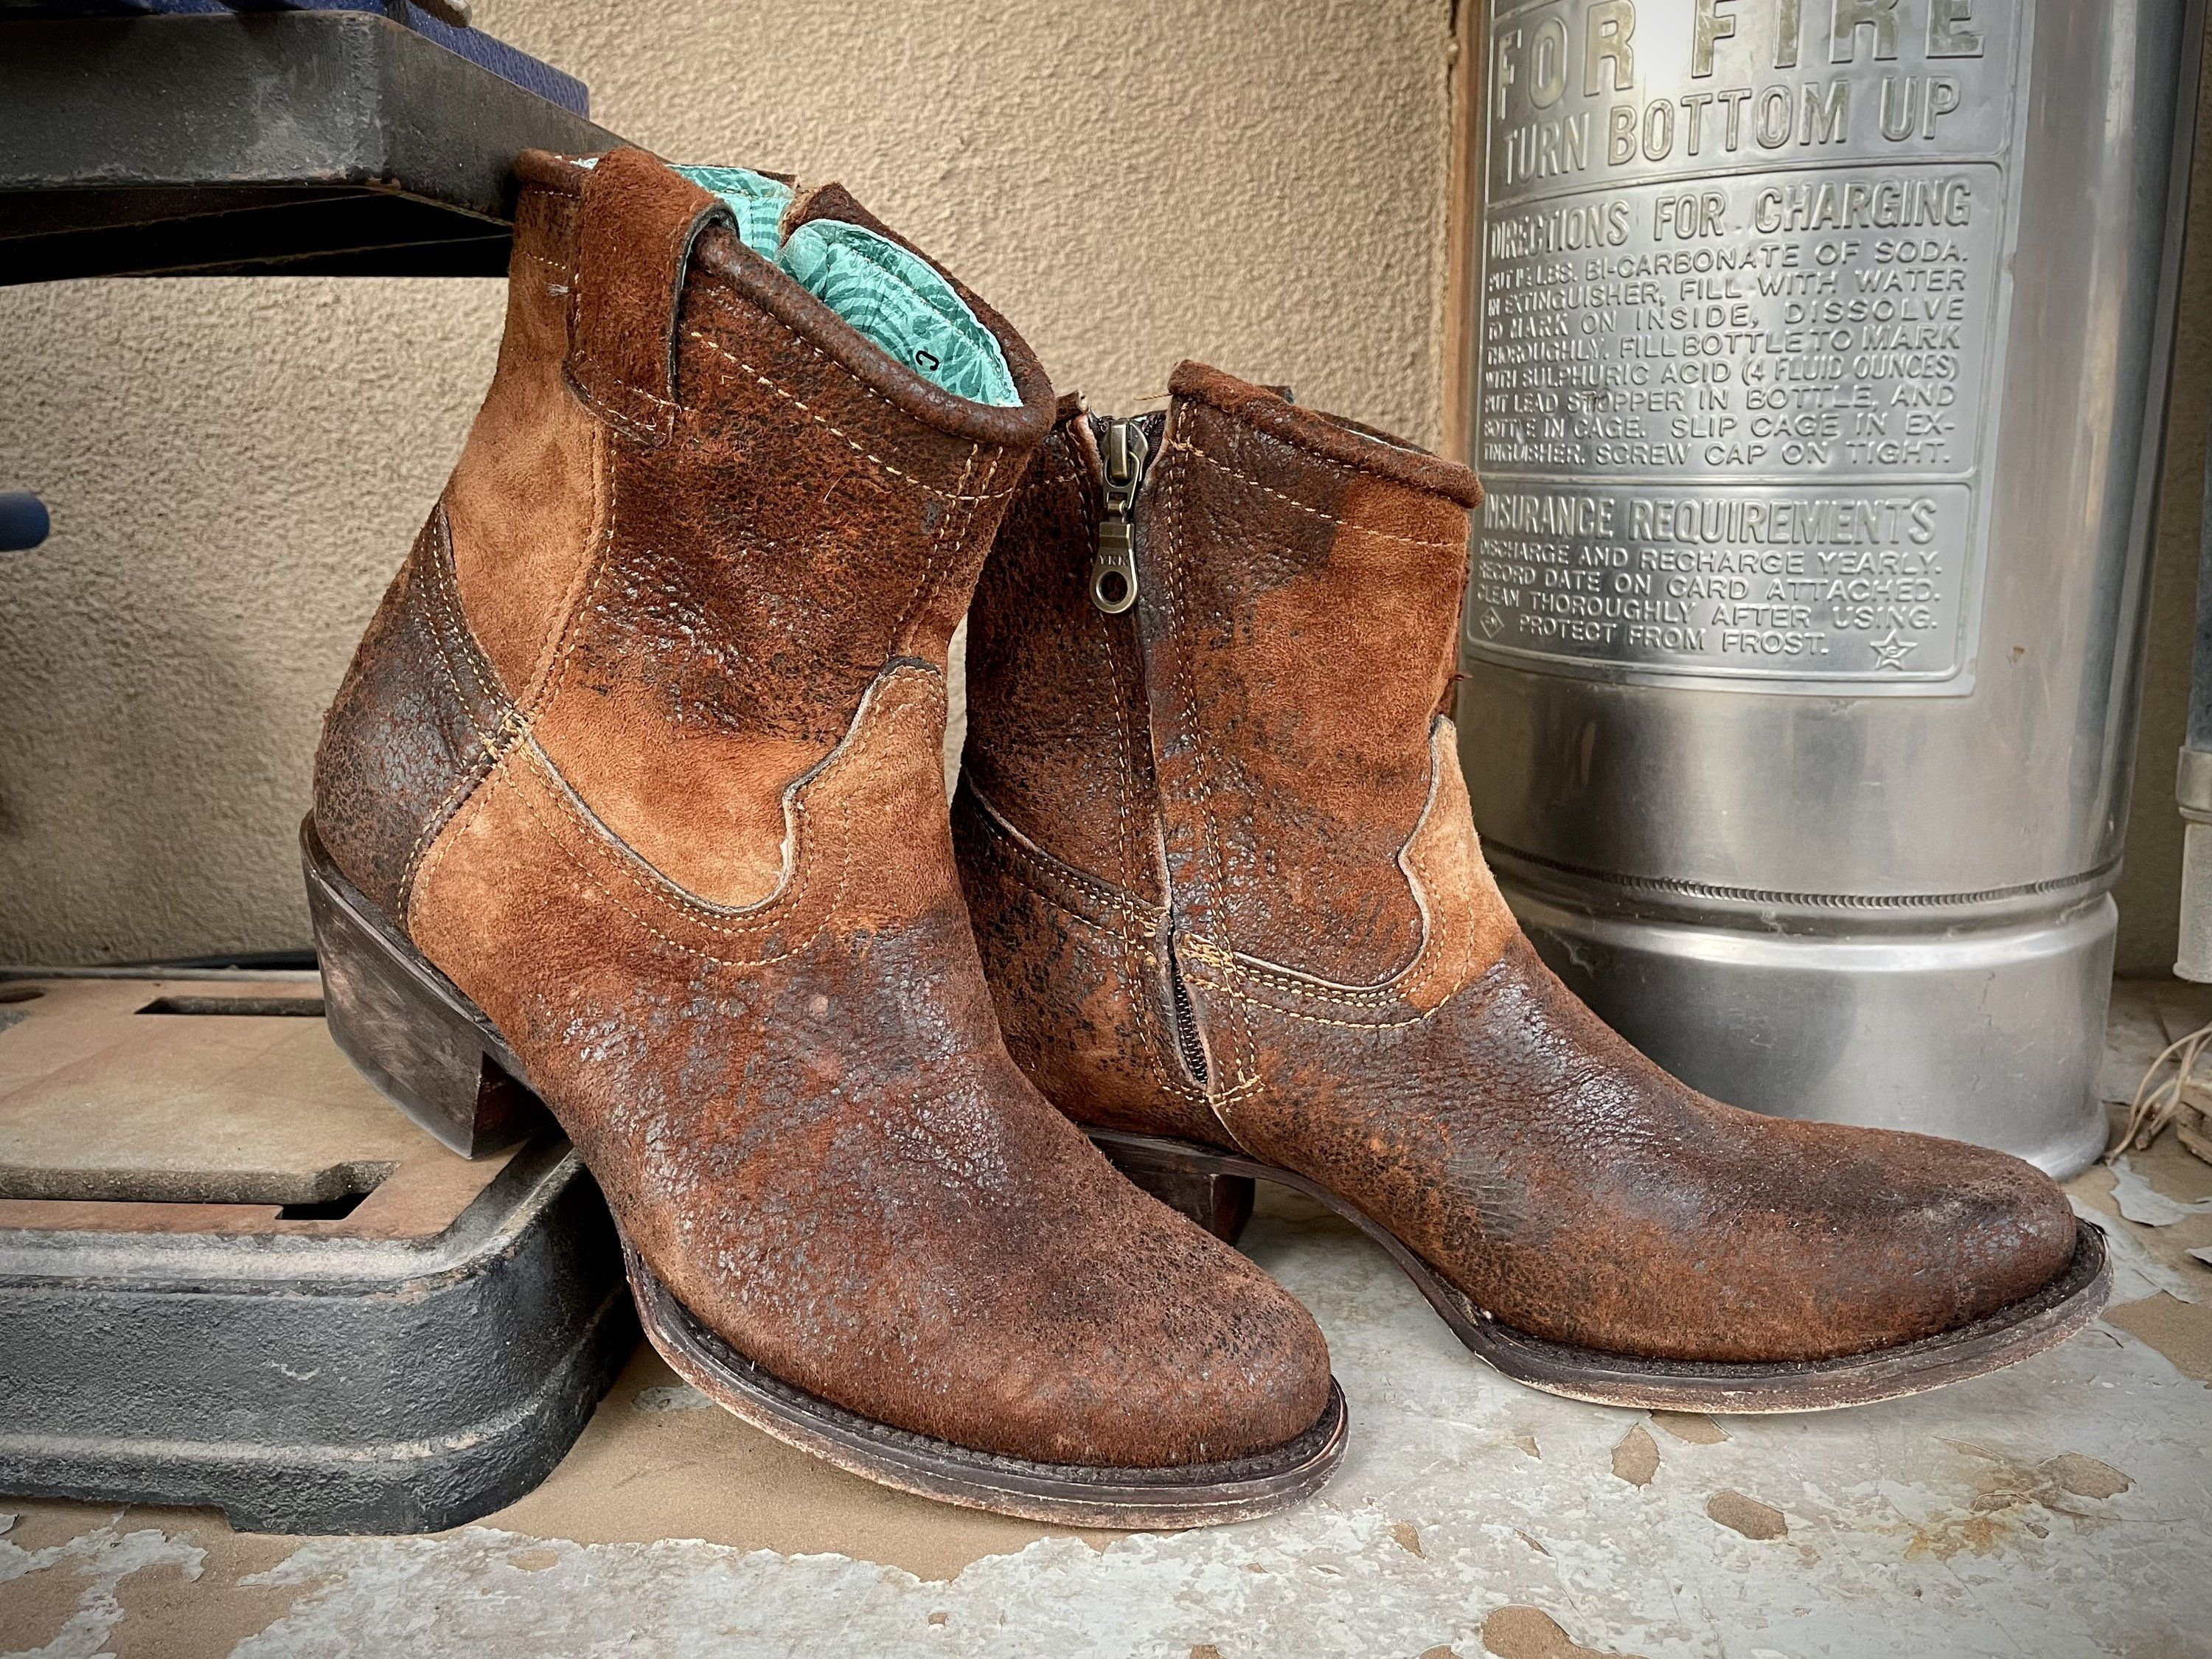 80s Cowgirl boots size 7 Brown Leather Pull Ups Vintage Distressed Country Western Womens Cowboy Jeweled Boots Country Barn Wedding